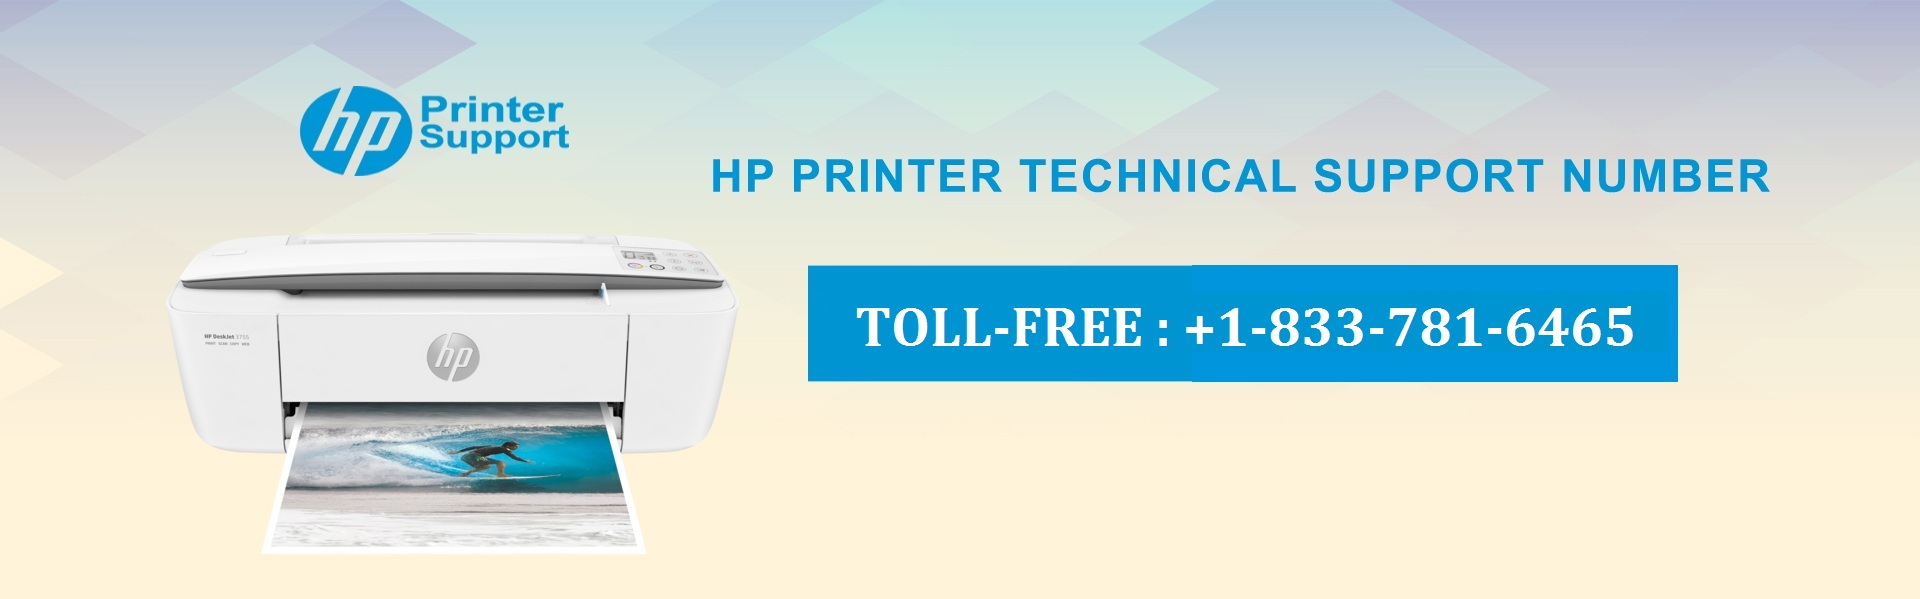 hp Printer phone number, hp Printer help number, hp Printer customer support